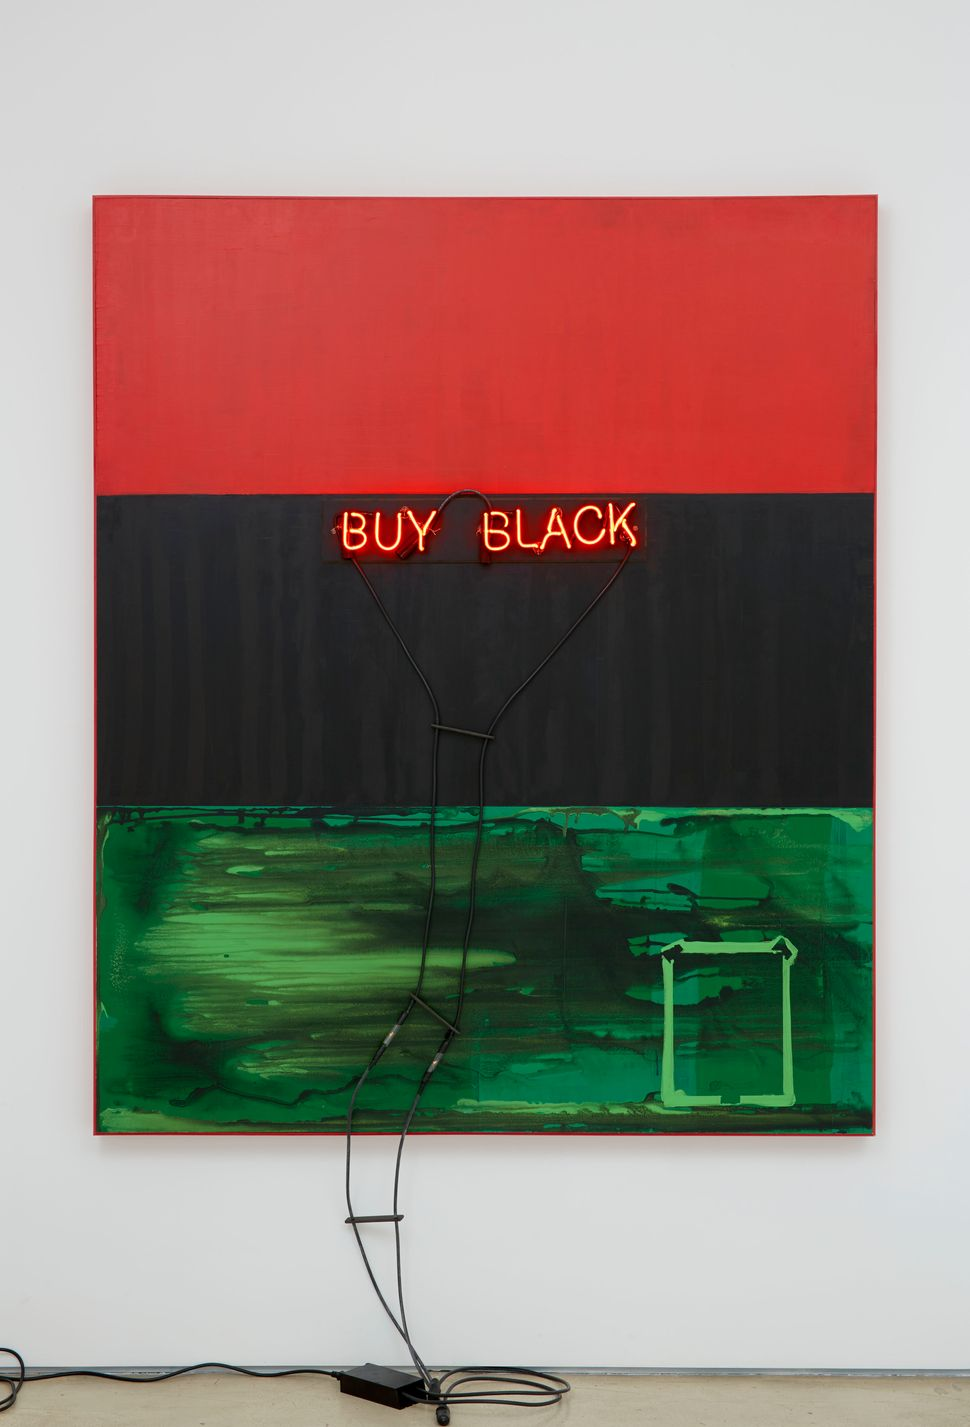 Kerry James Marshall, Buy Black